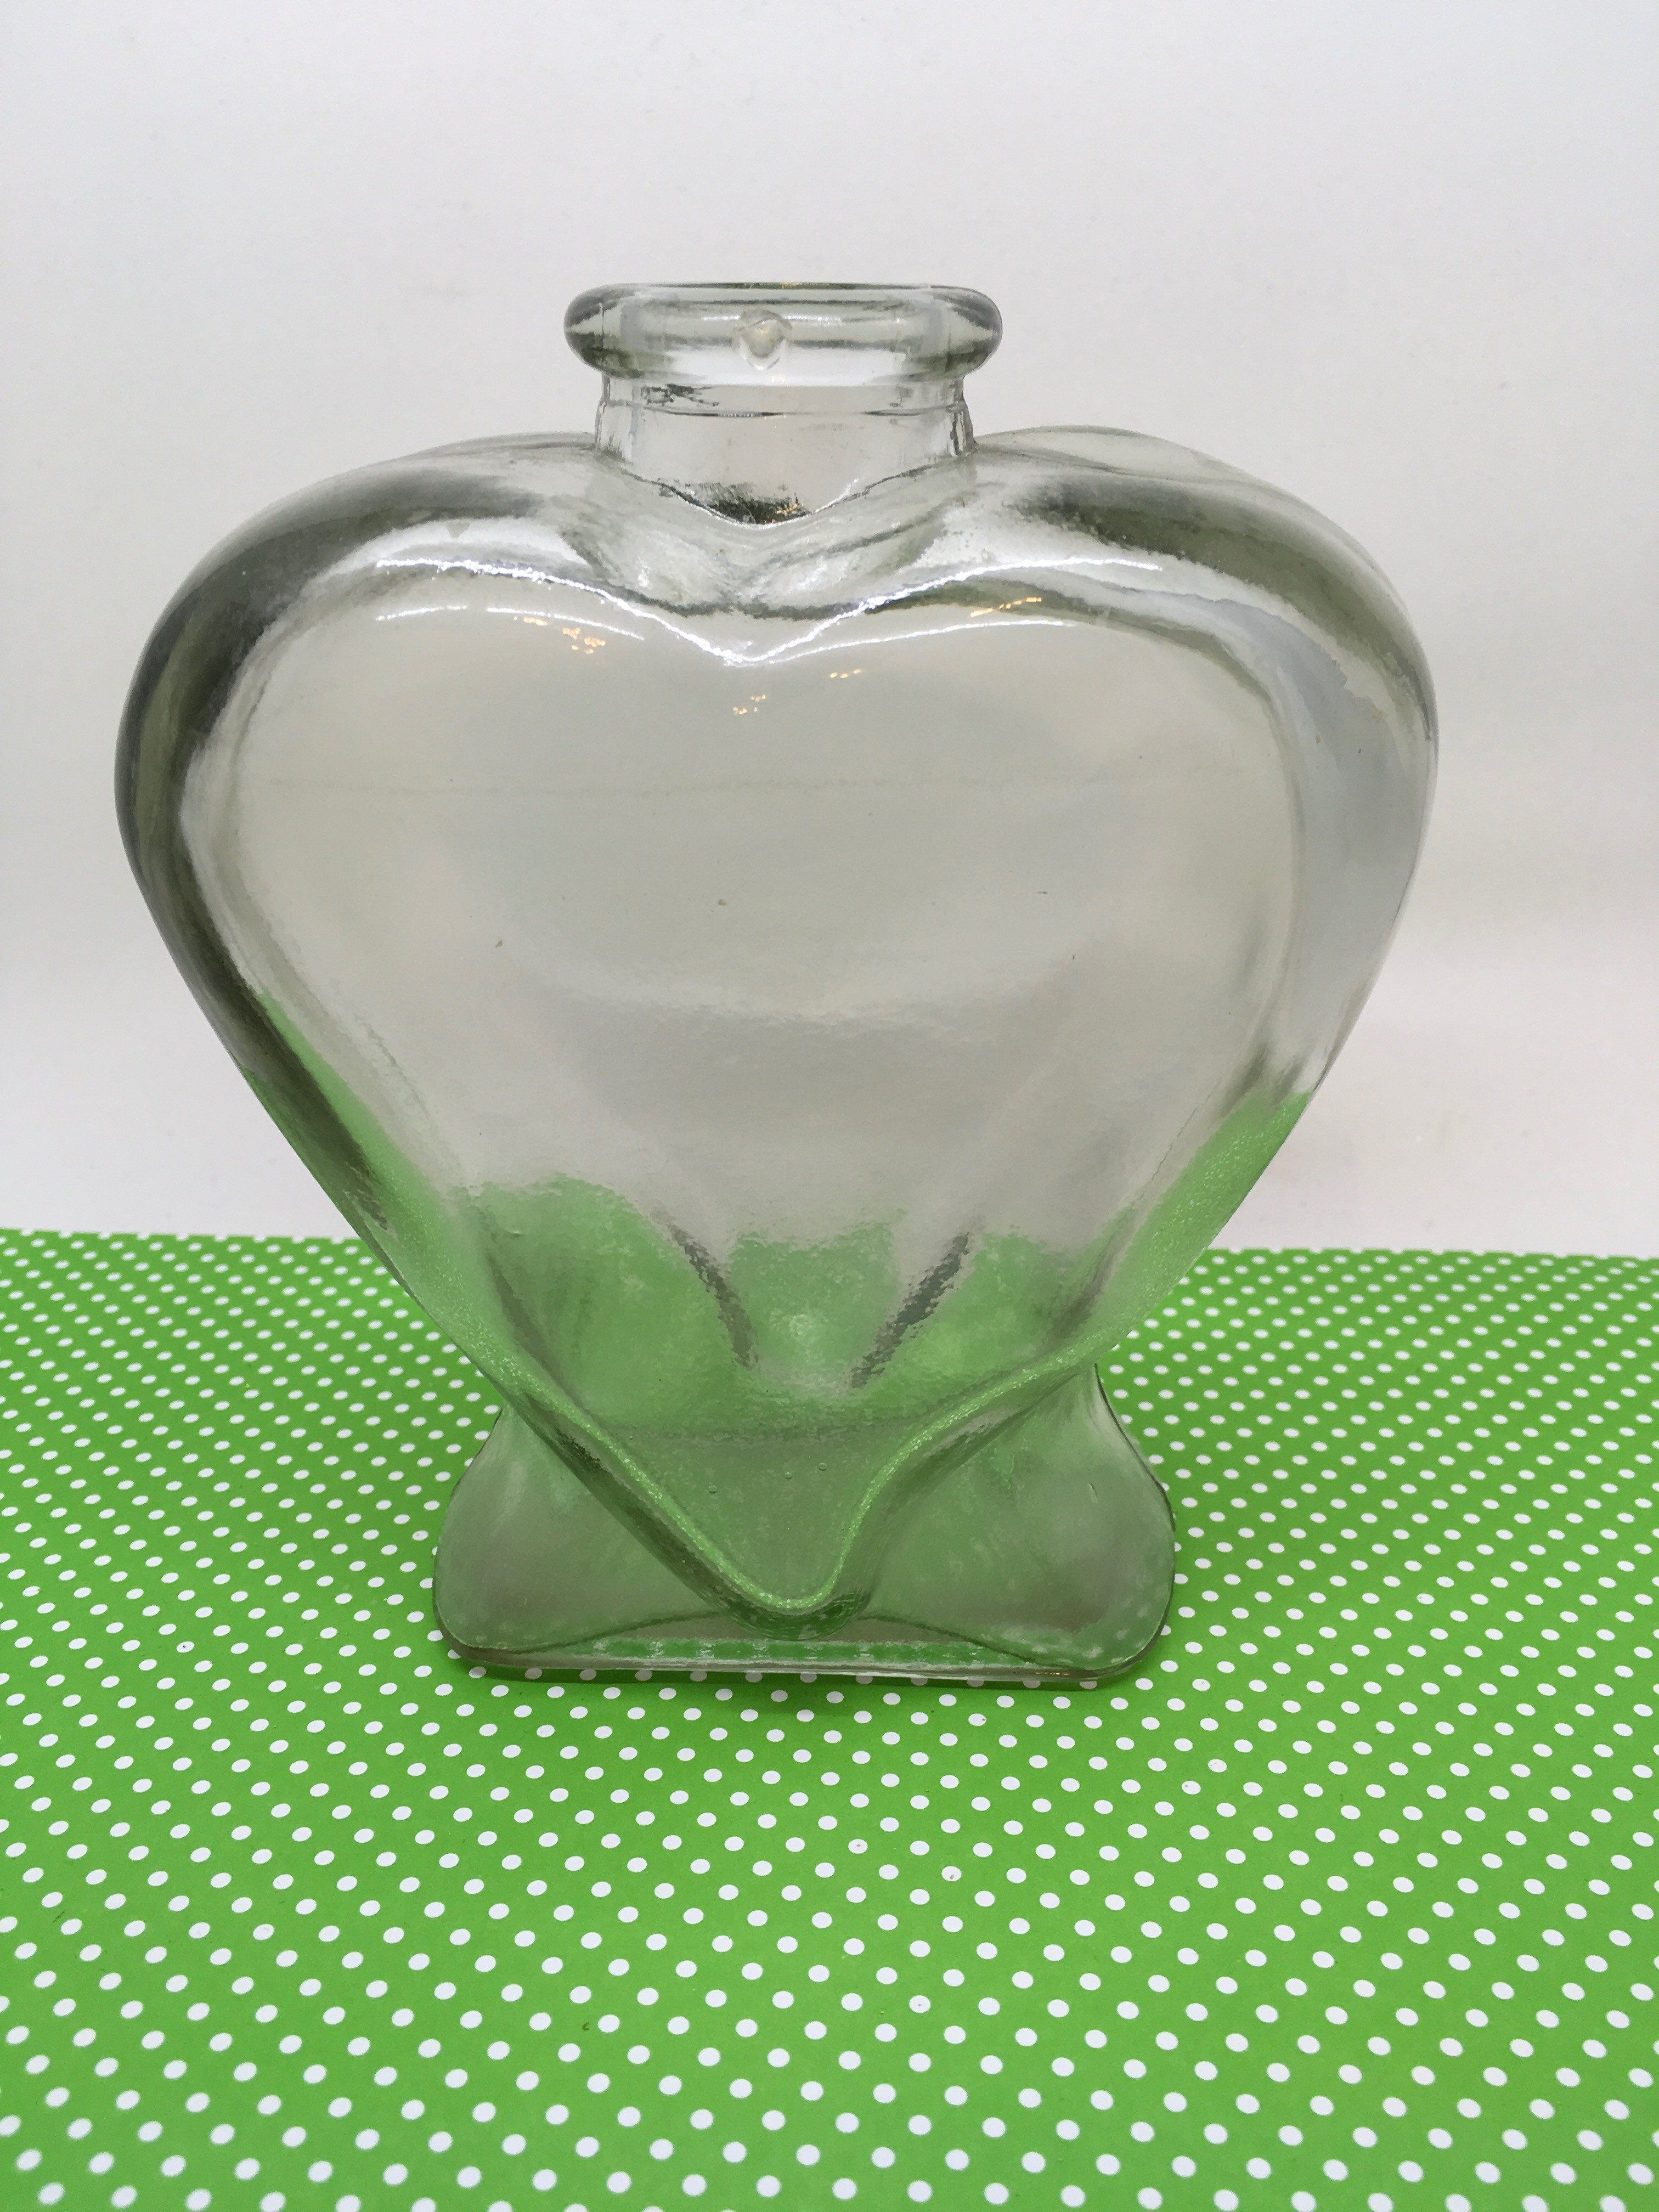 Bottle vase green glass heart shaped with marking 5 on bottom bottle vase green glass heart shaped with marking 5 on bottom reviewsmspy